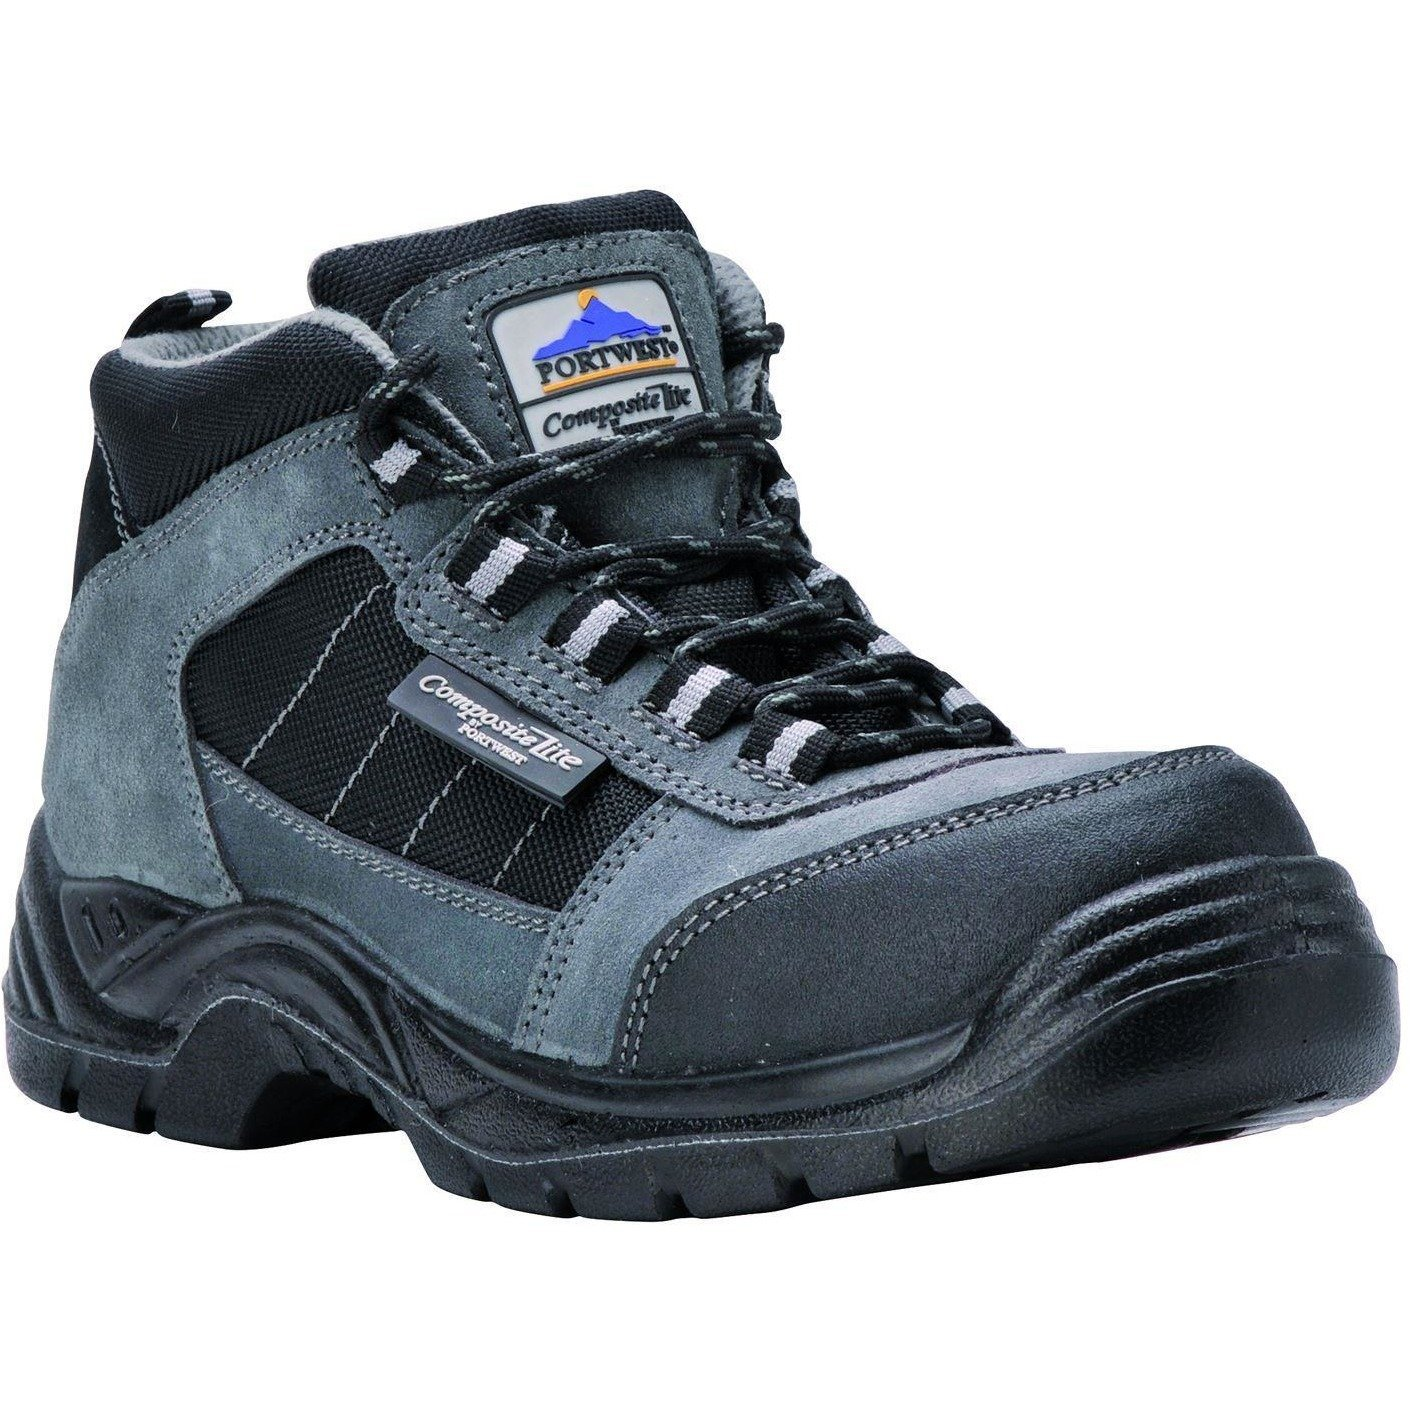 Portwest Compositelite Trekker Boot S1 FC63 - reid outdoors